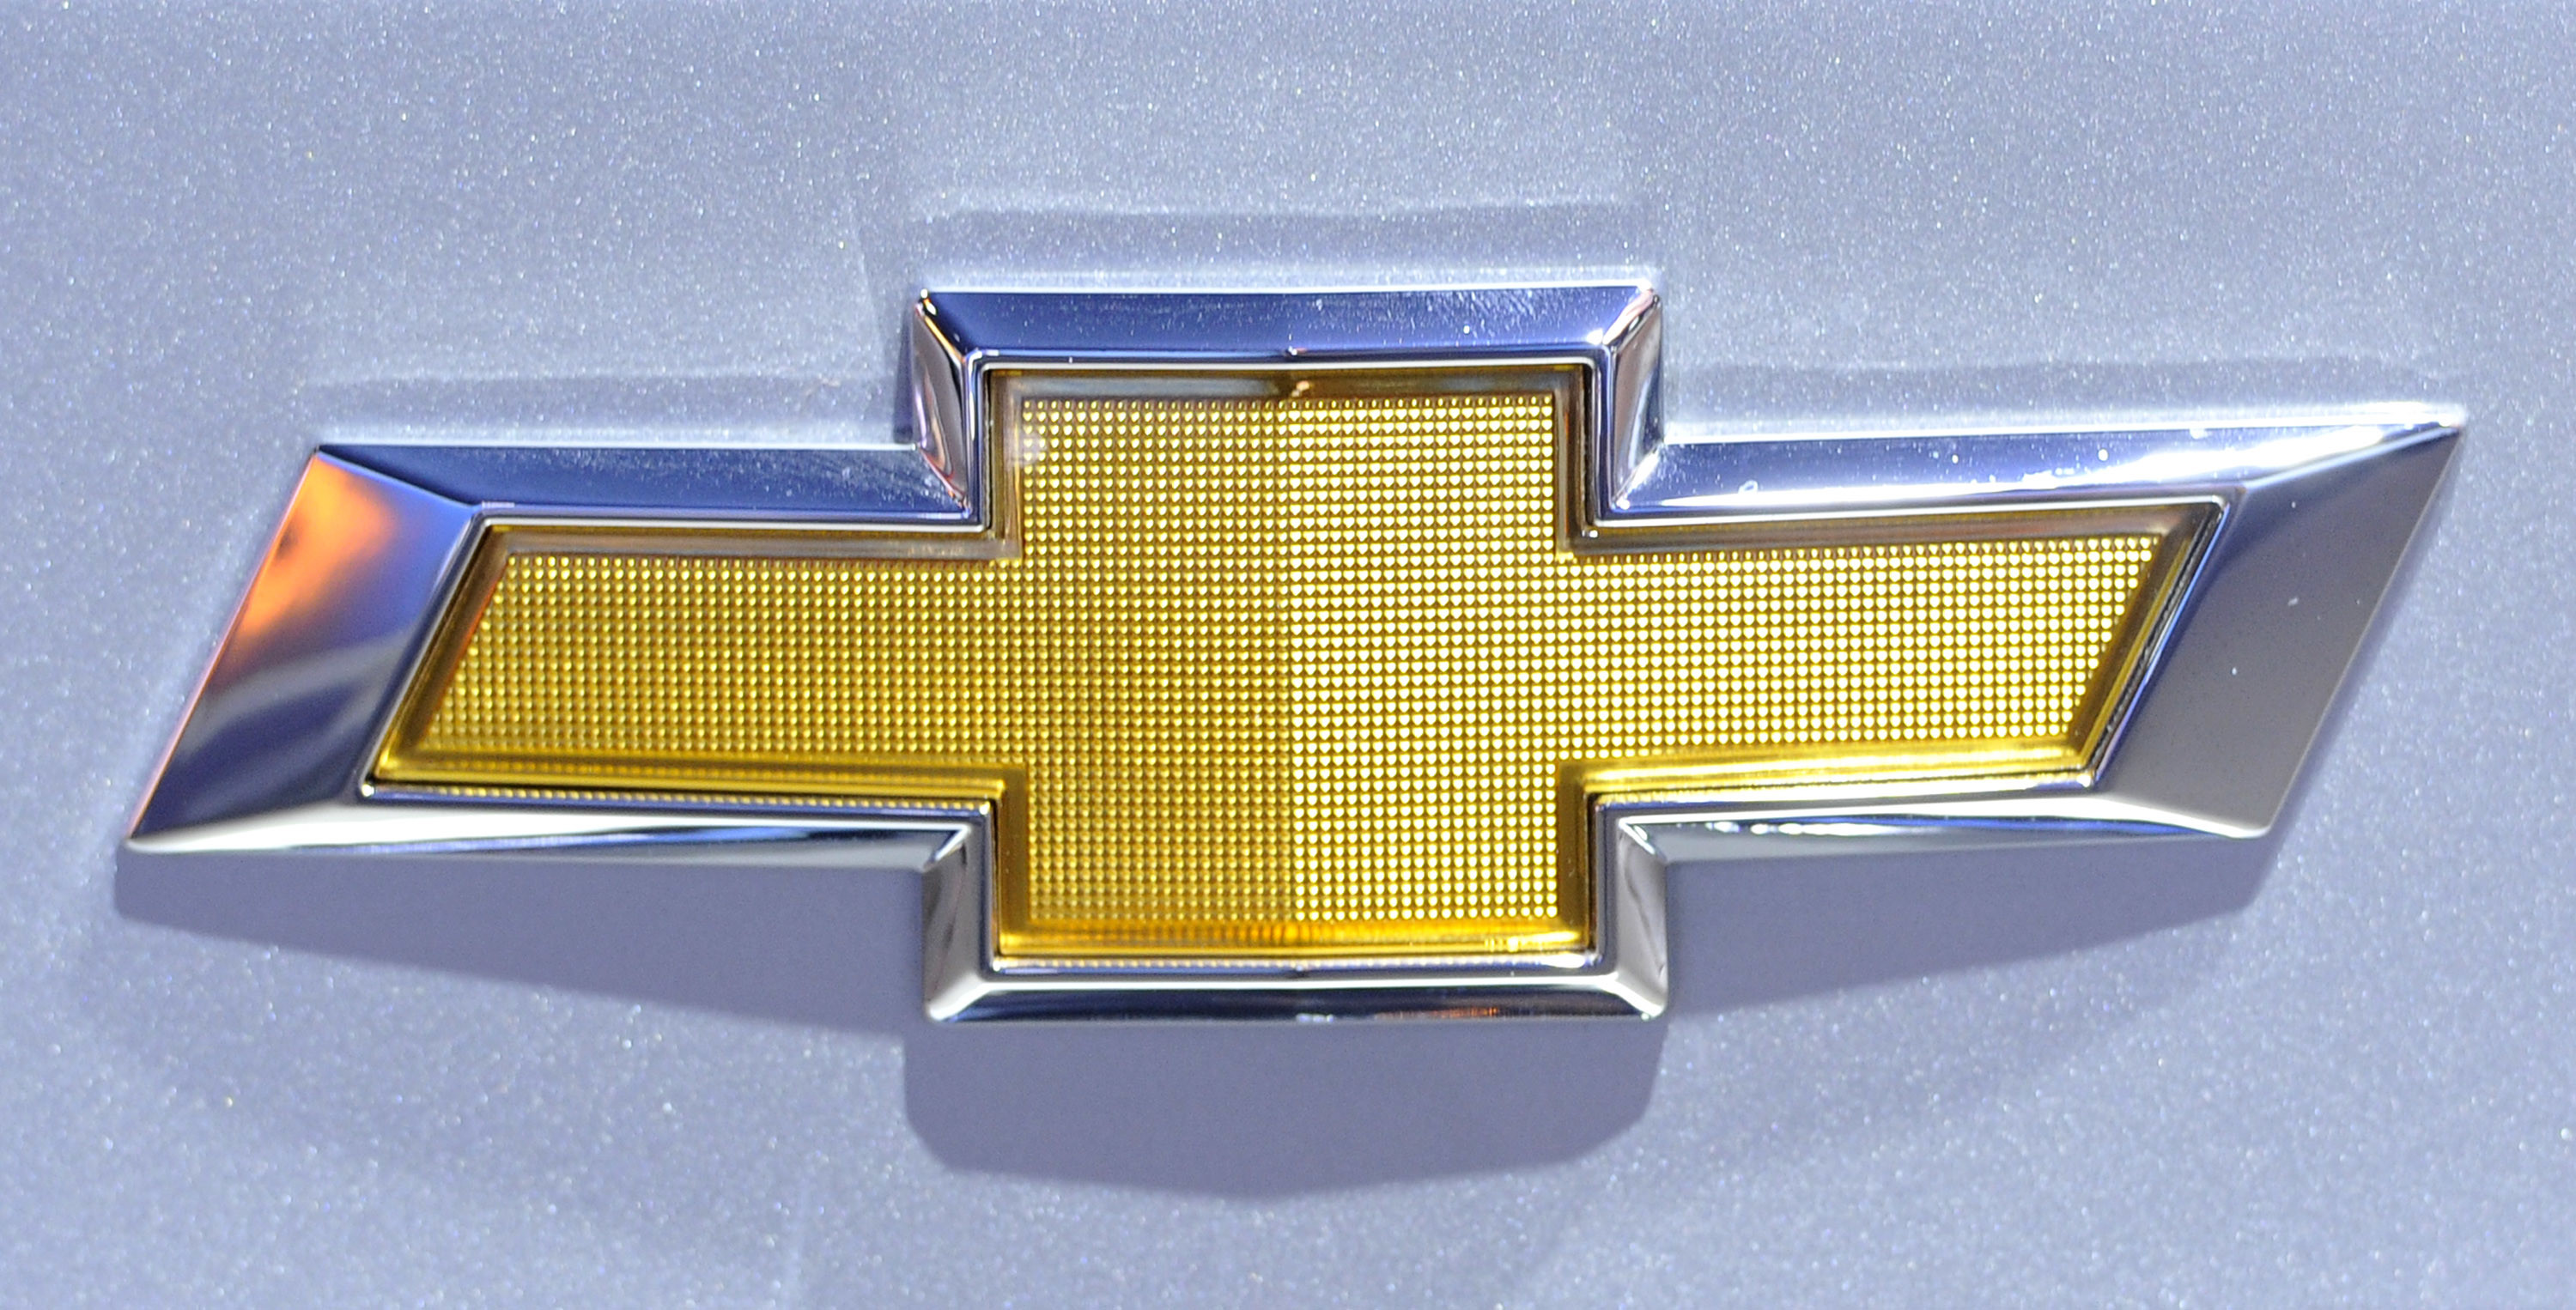 Res: 3000x1526, The logo for Chevrolet on display at the Chicago Auto Show